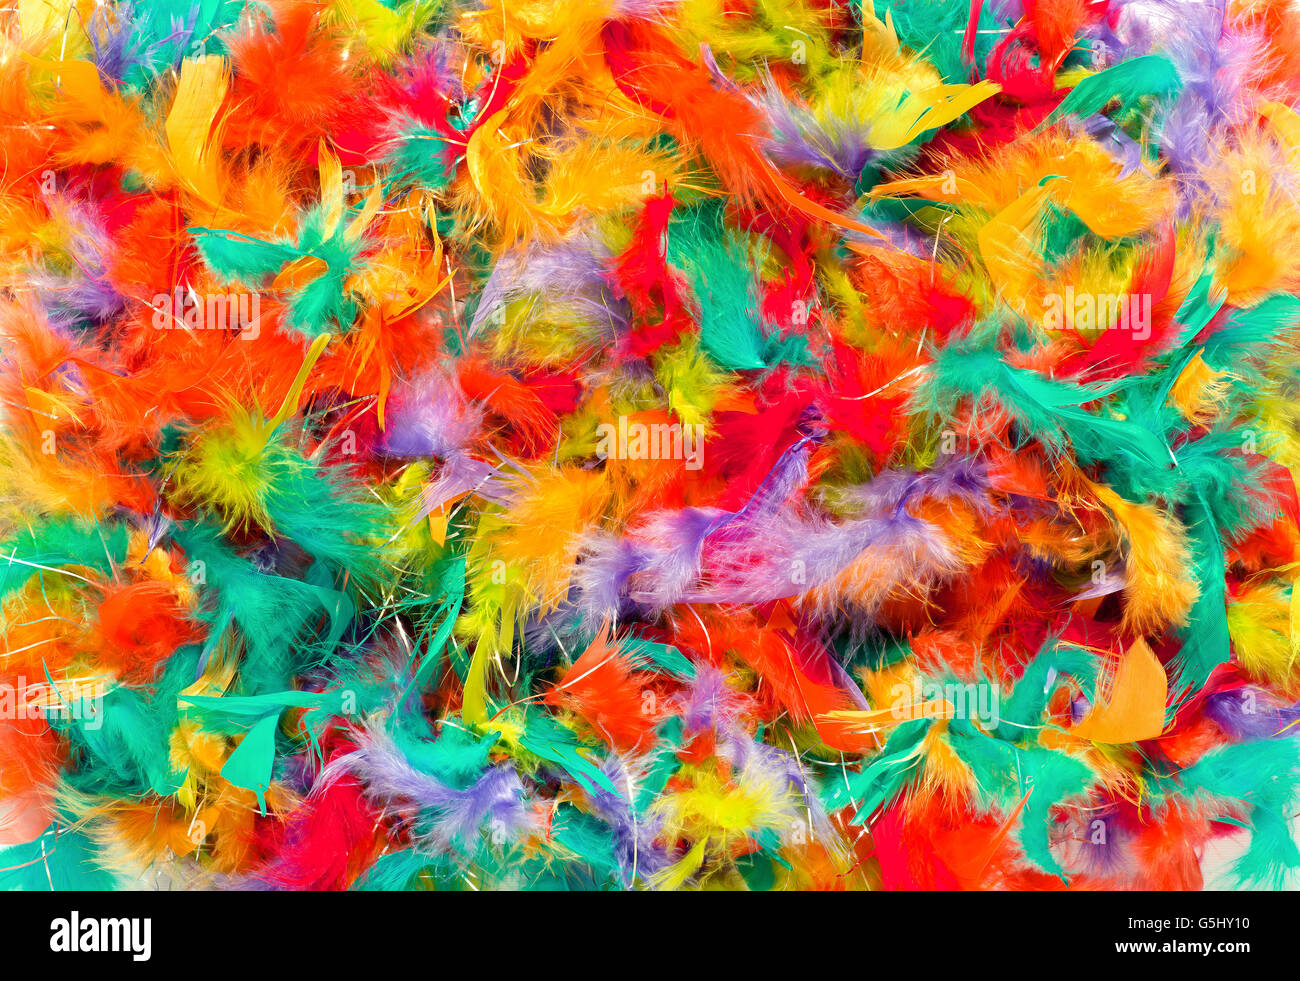 Background texture of colorful feathers - Stock Image